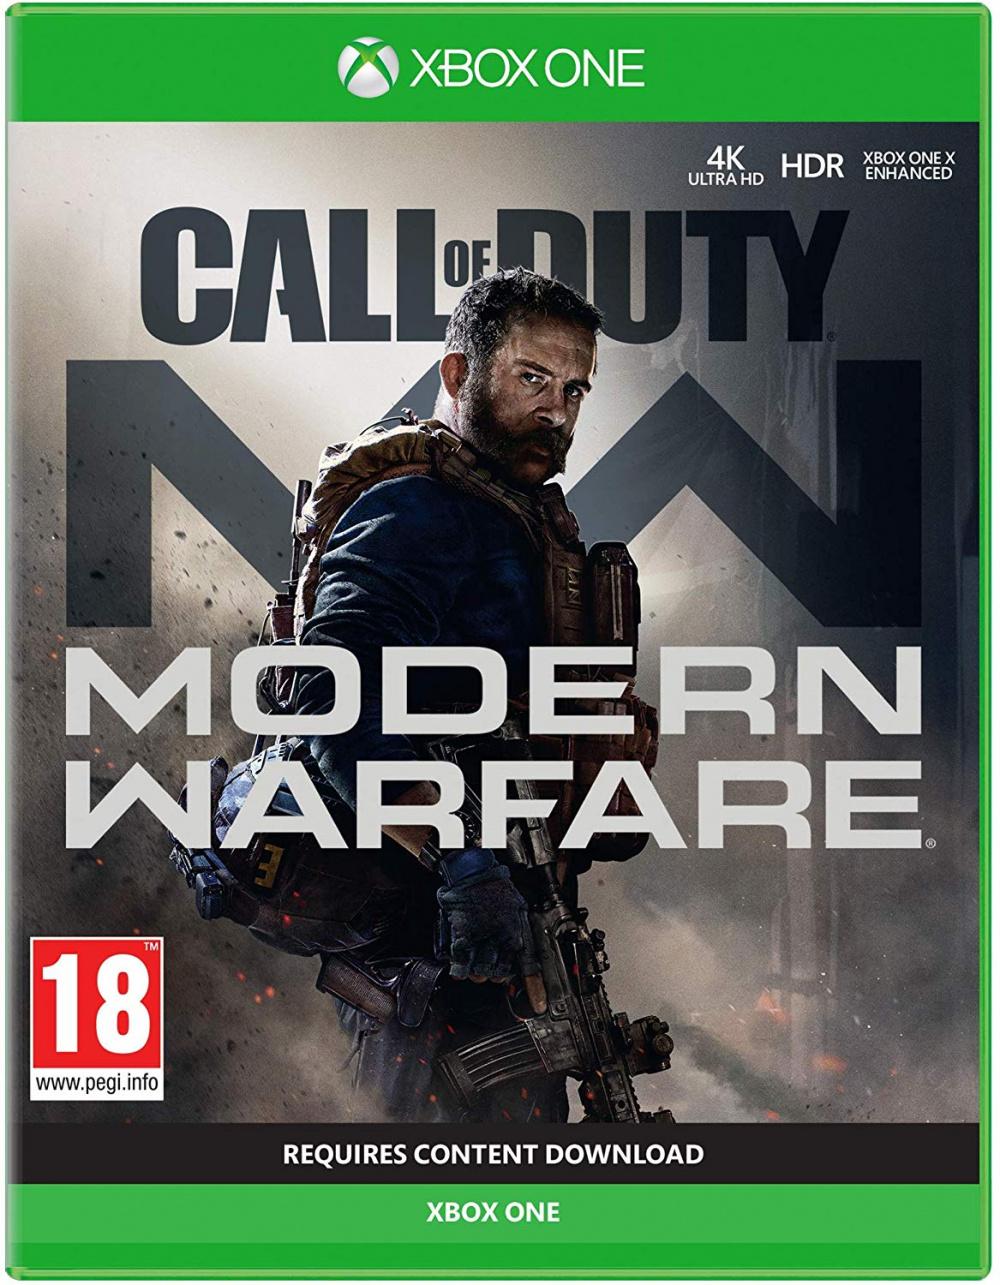 Call of Duty:Modern Warfare 2019/XBOX ONE, Series X|S🏅